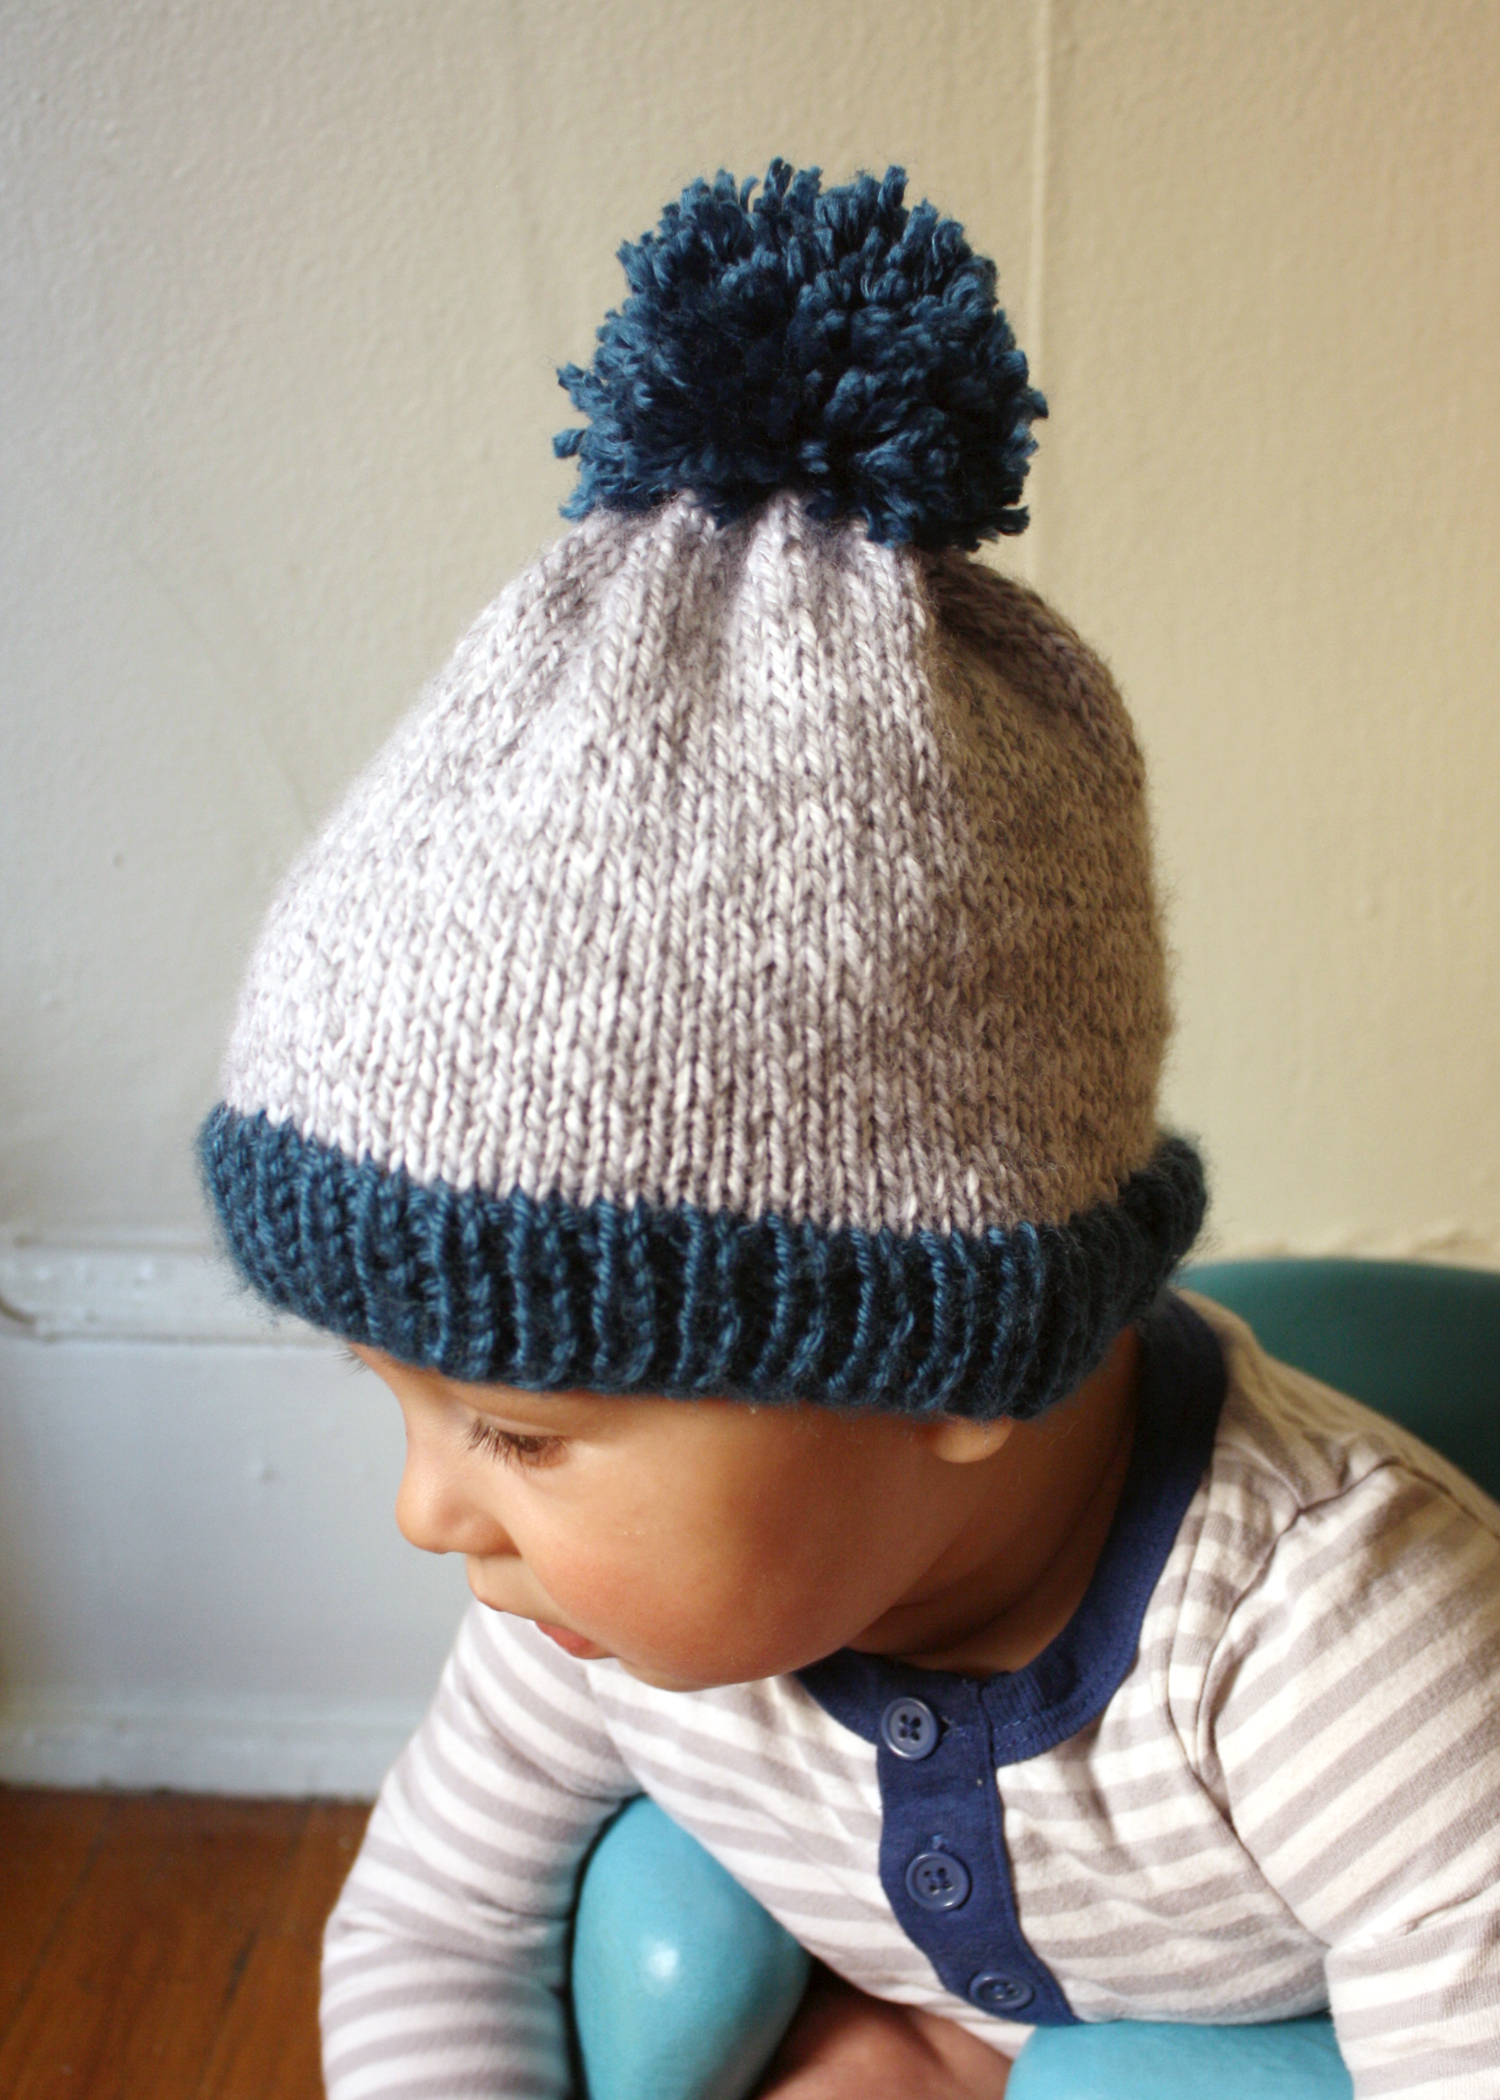 Pom Pom Beanie Knitting Pattern : michael ann made.: Big Pom Baby Beanie - Now With Free PDF Pattern!